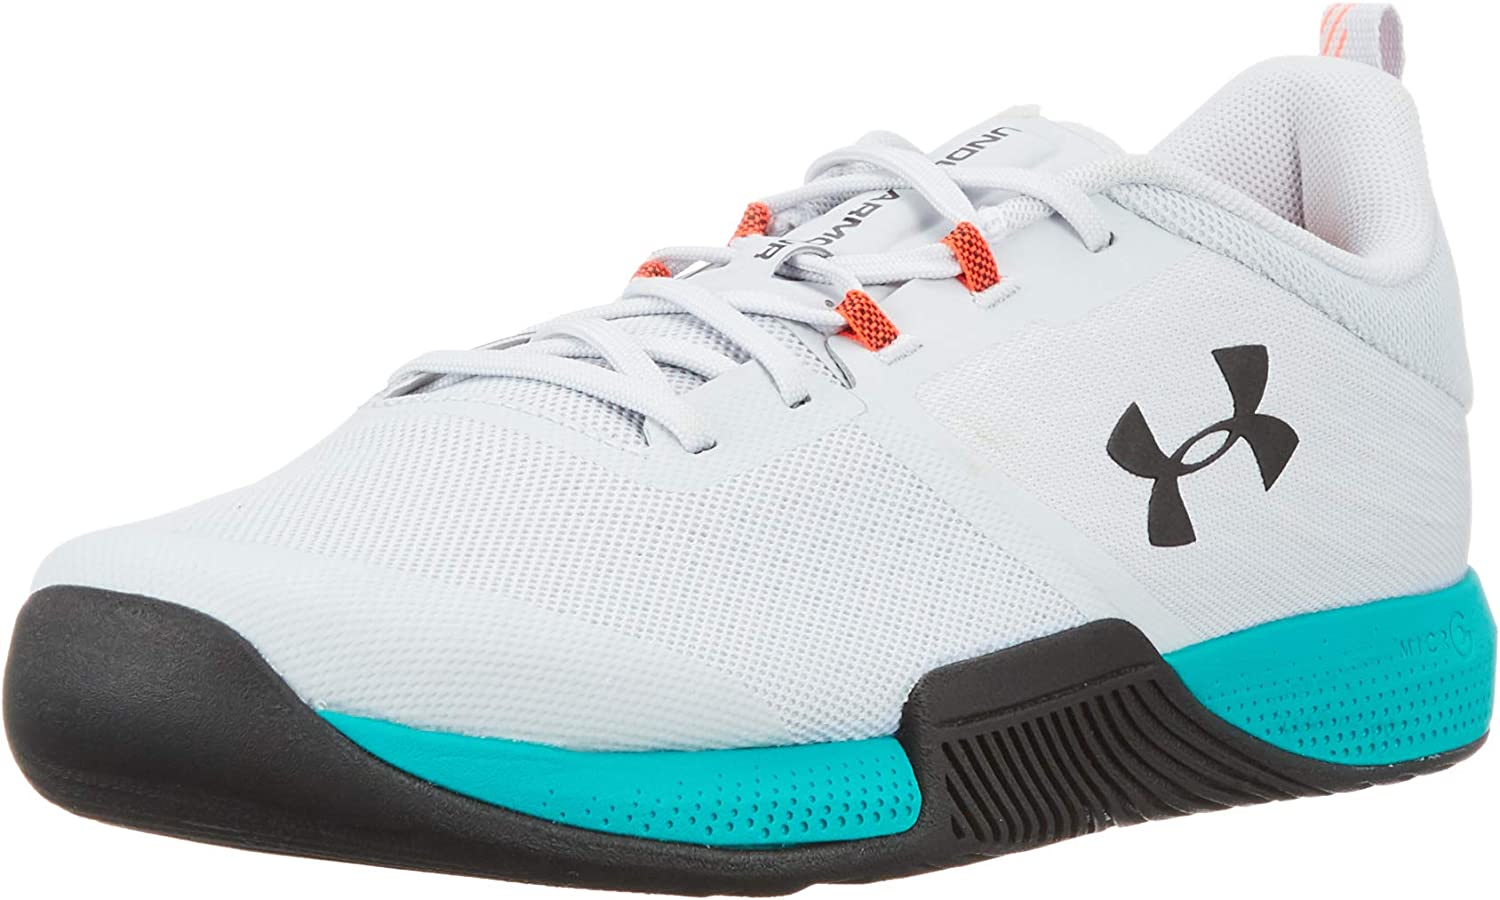 Under Armour UA Tribase Thrive, Zapatillas Deportivas para Interior para Hombre